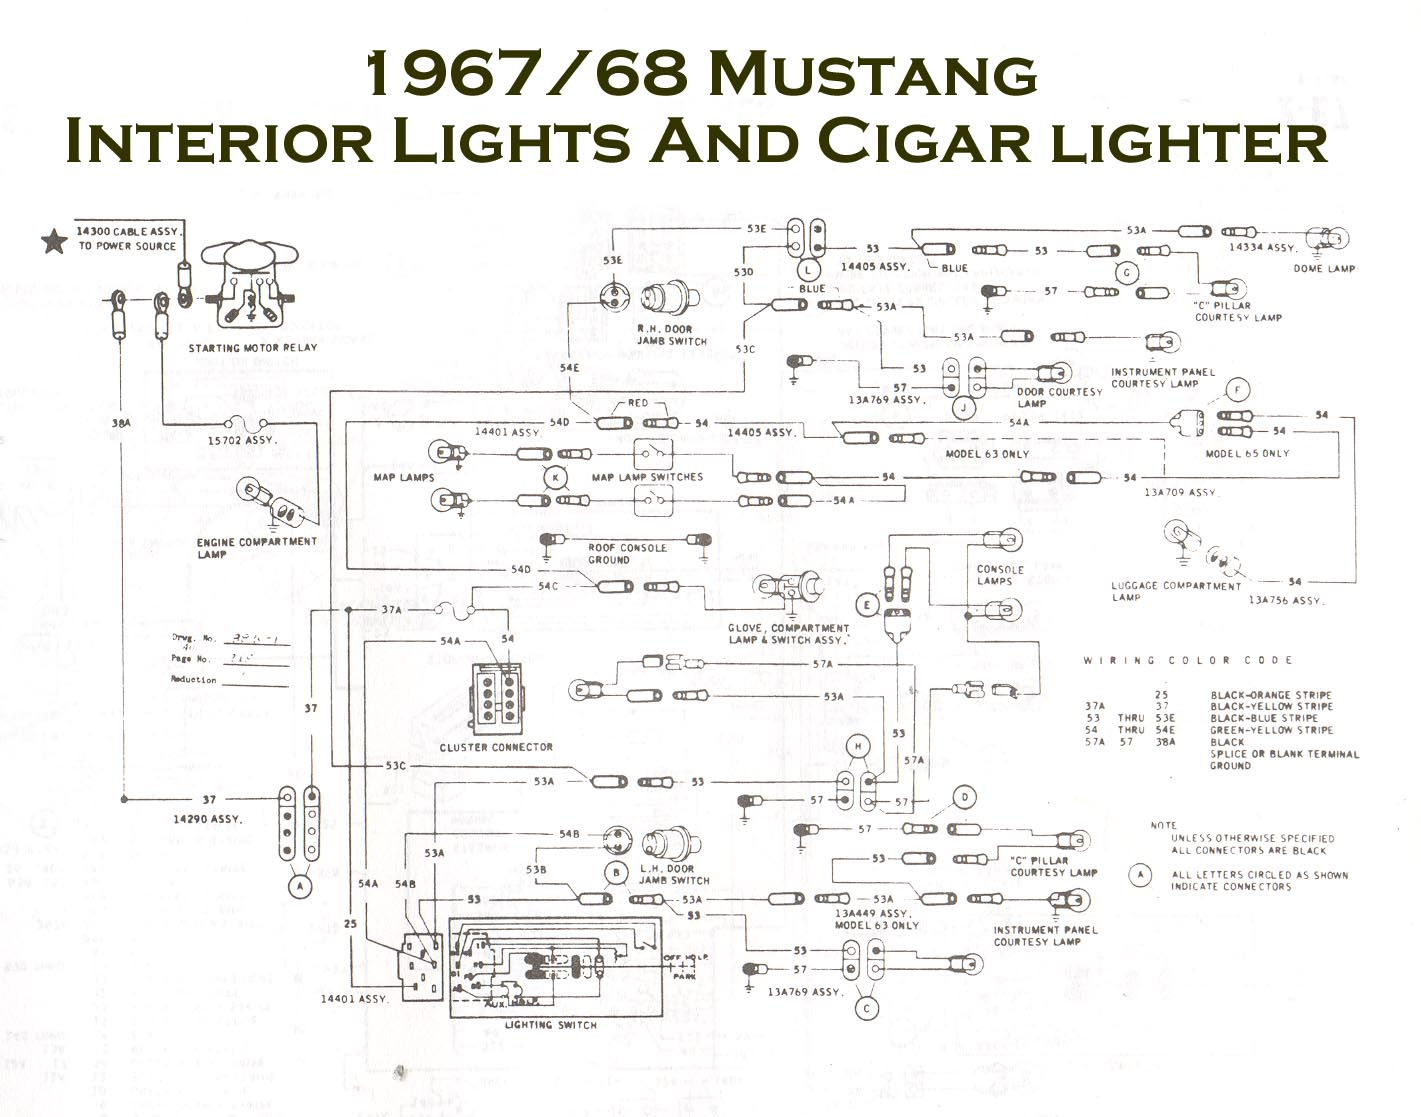 Vintage Mustang Wiring Diagrams Light Schematic Diagram 1967 68 Console